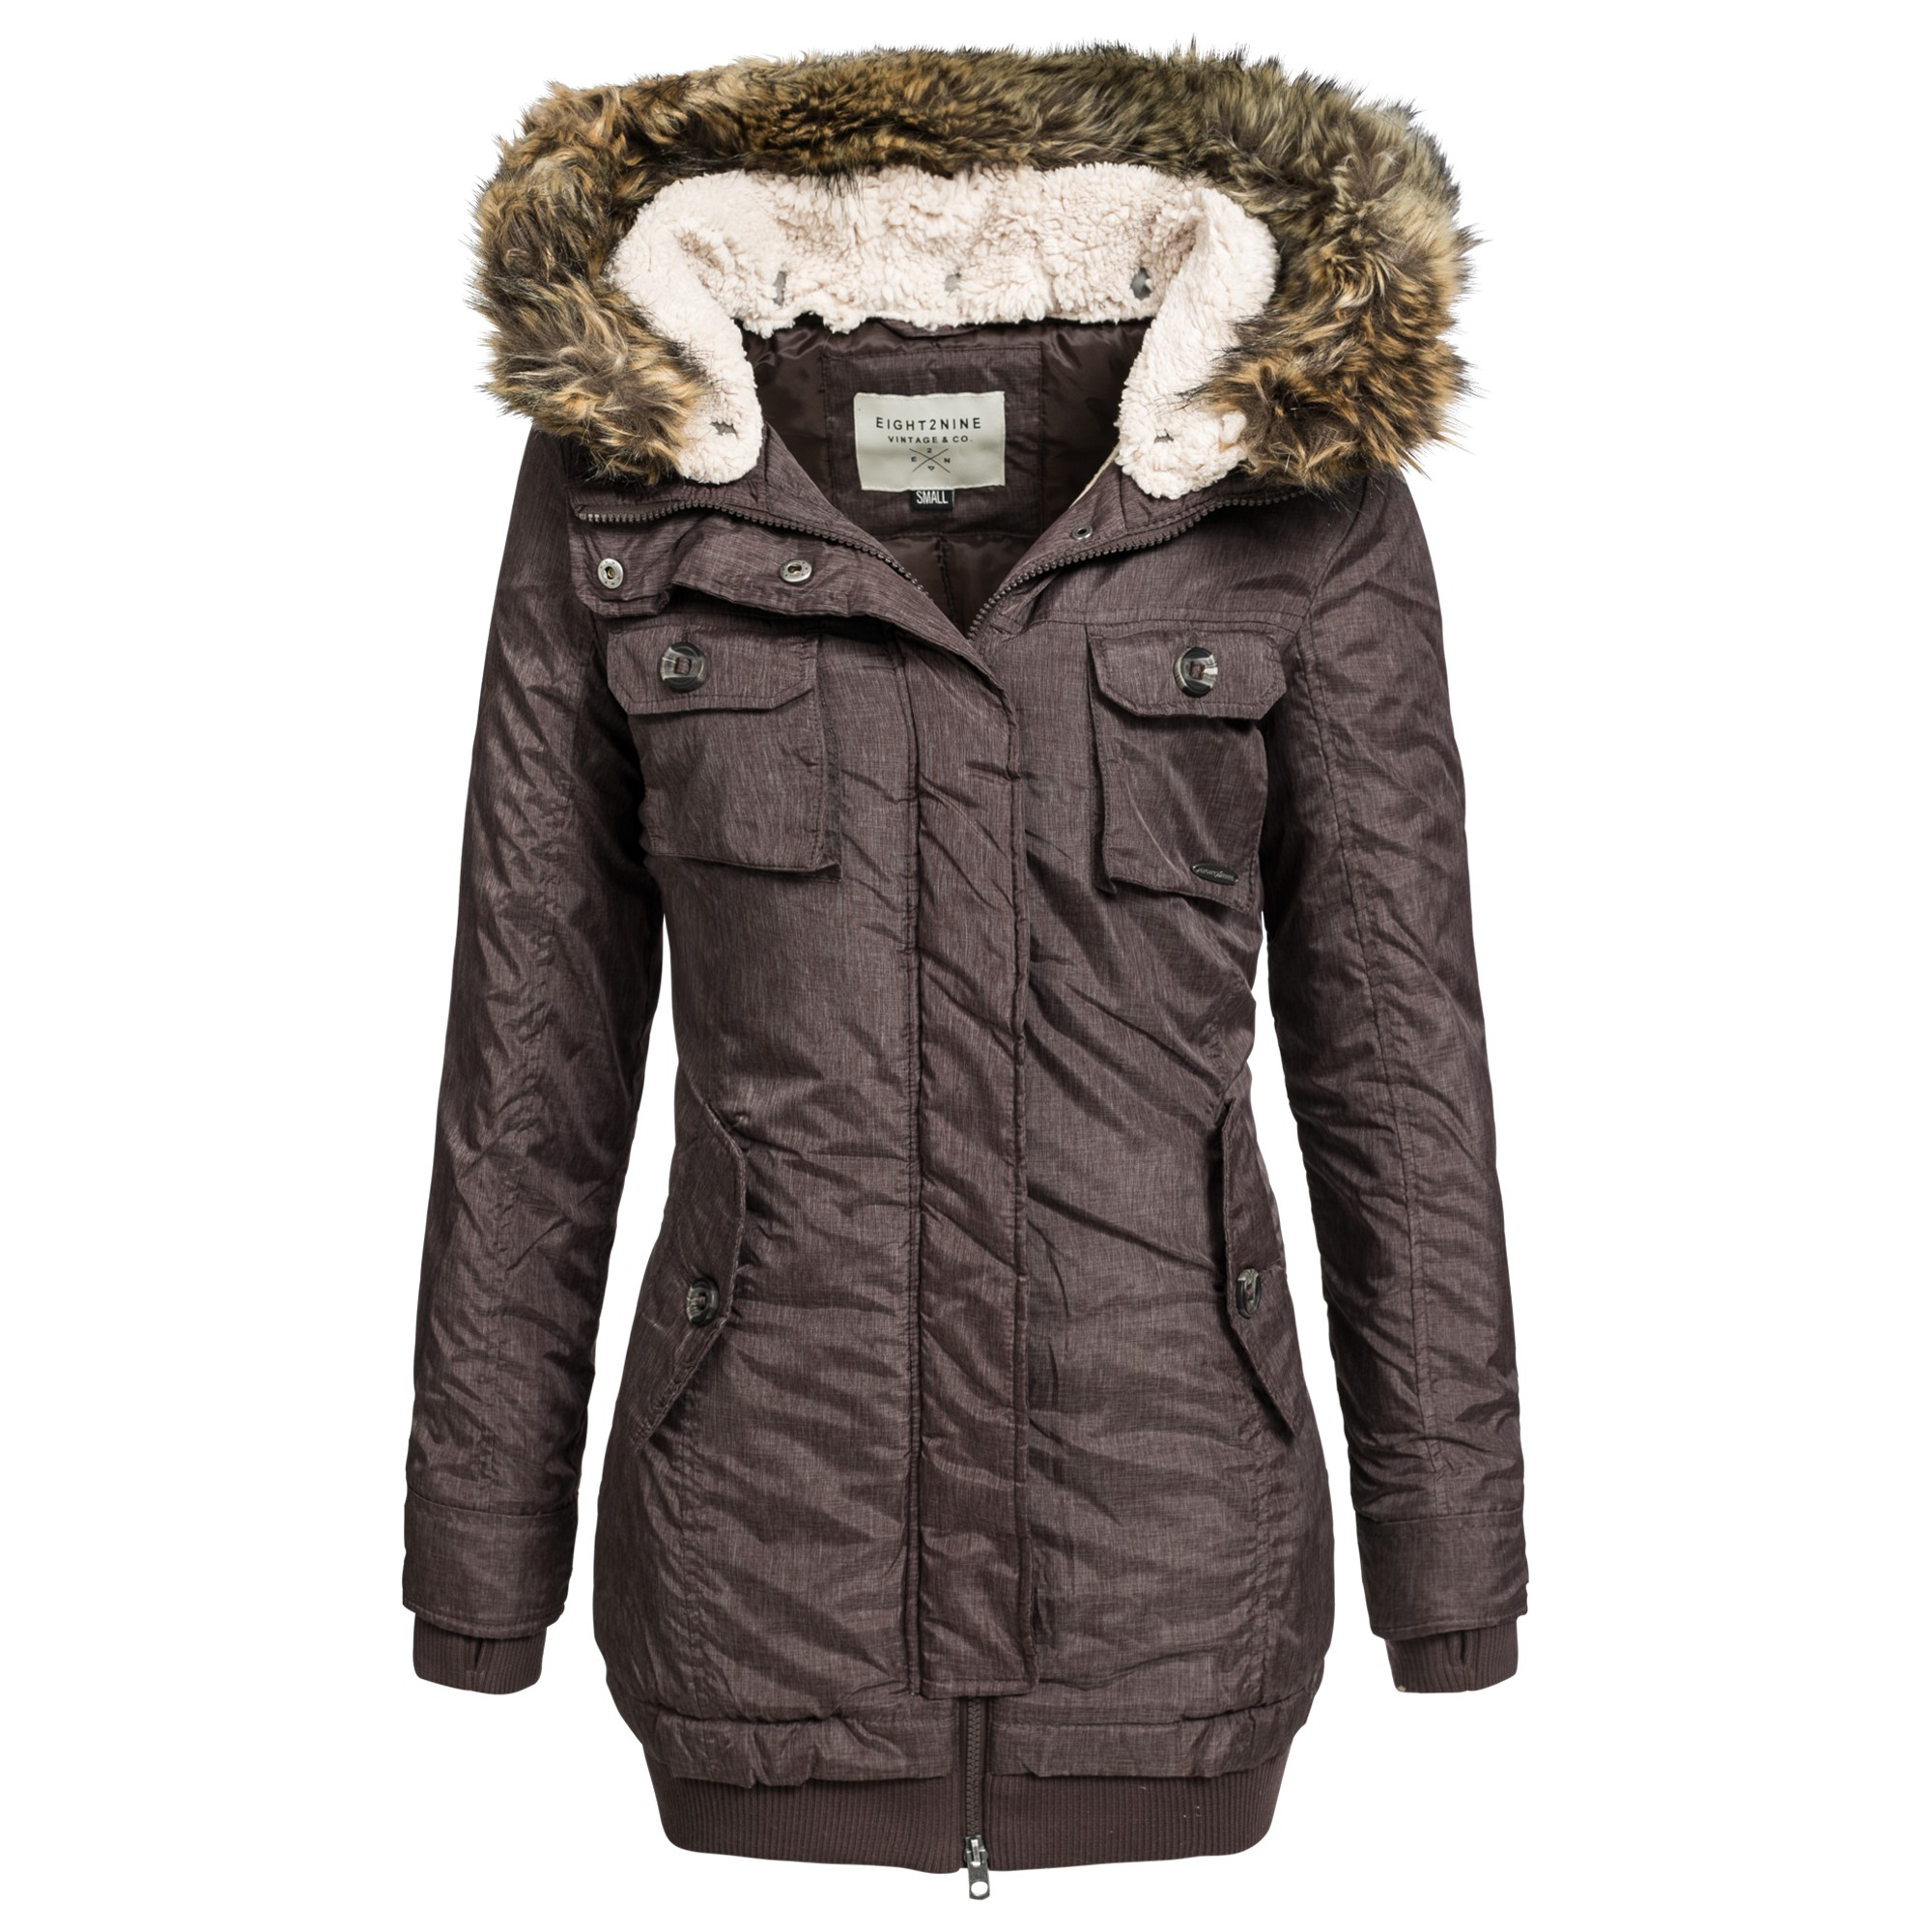 Braun Hamburg Sale Winterjacke Damen Xl – Modische Jacken 2018-2019